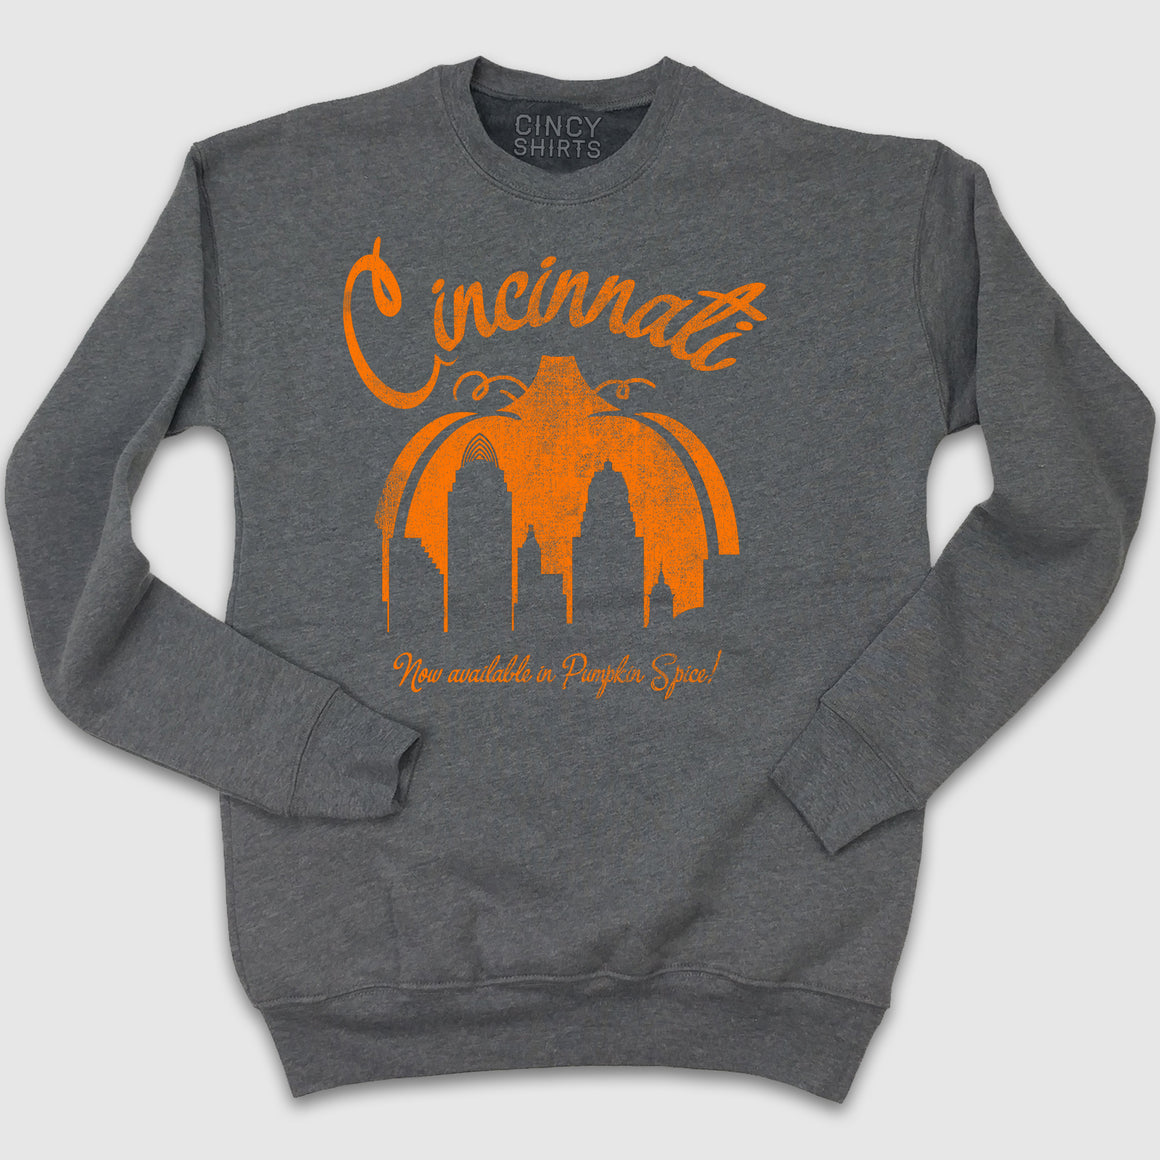 Cincinnati Now Available in Pumpkin Spice - Cincy Shirts